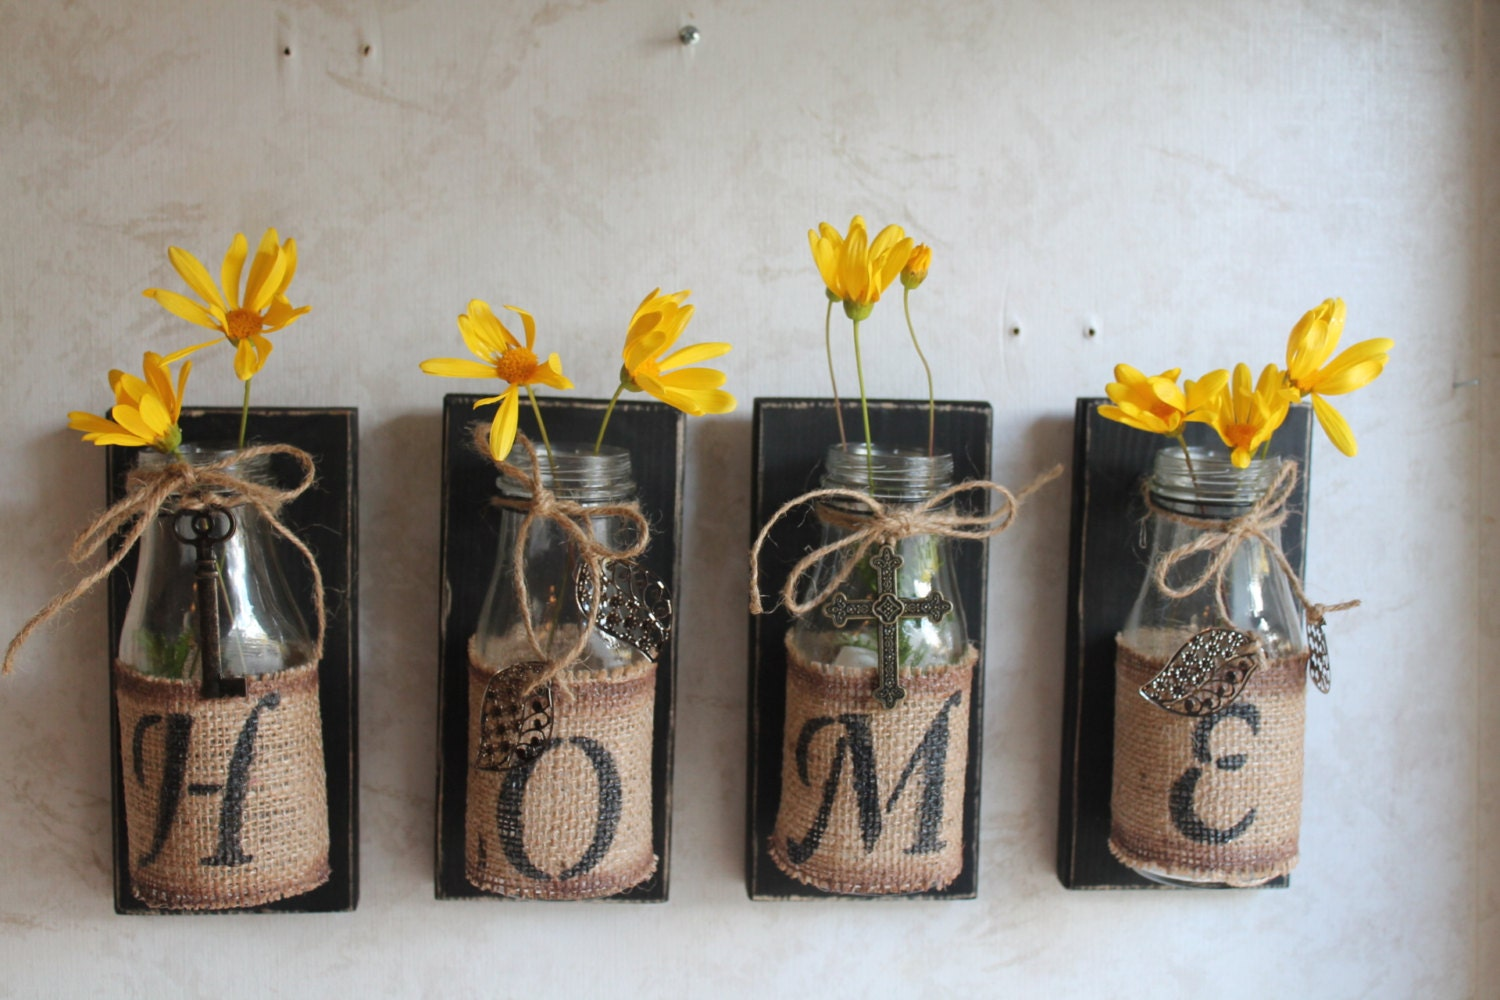 Wall Decoration Items Home Wall Decorset Of 4.upcycled Bottleshome